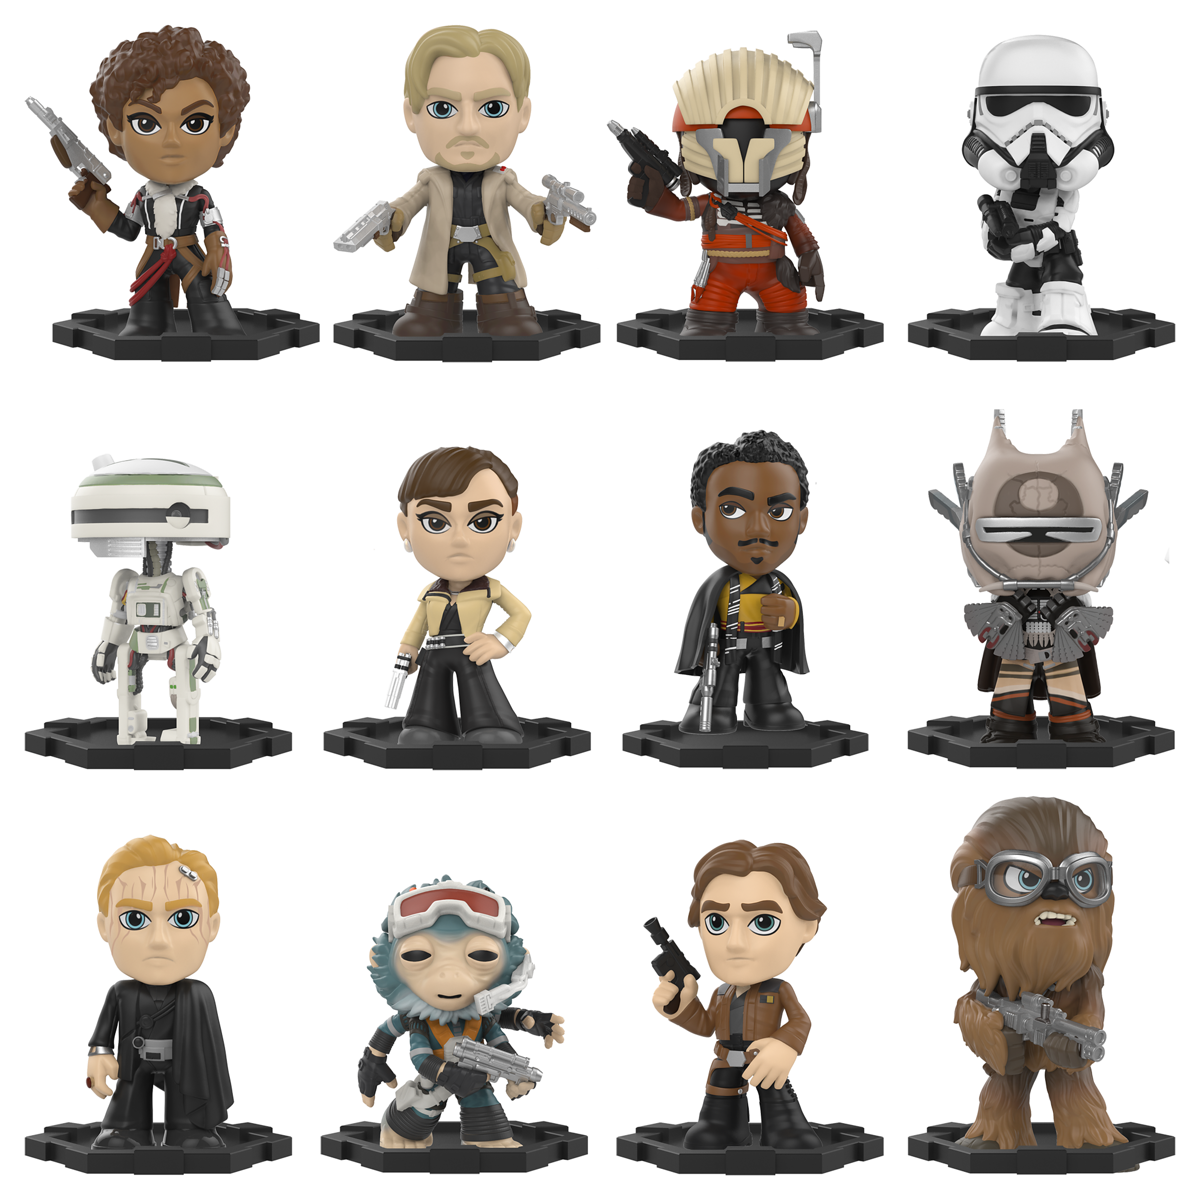 Solo: A Star Wars Story toys